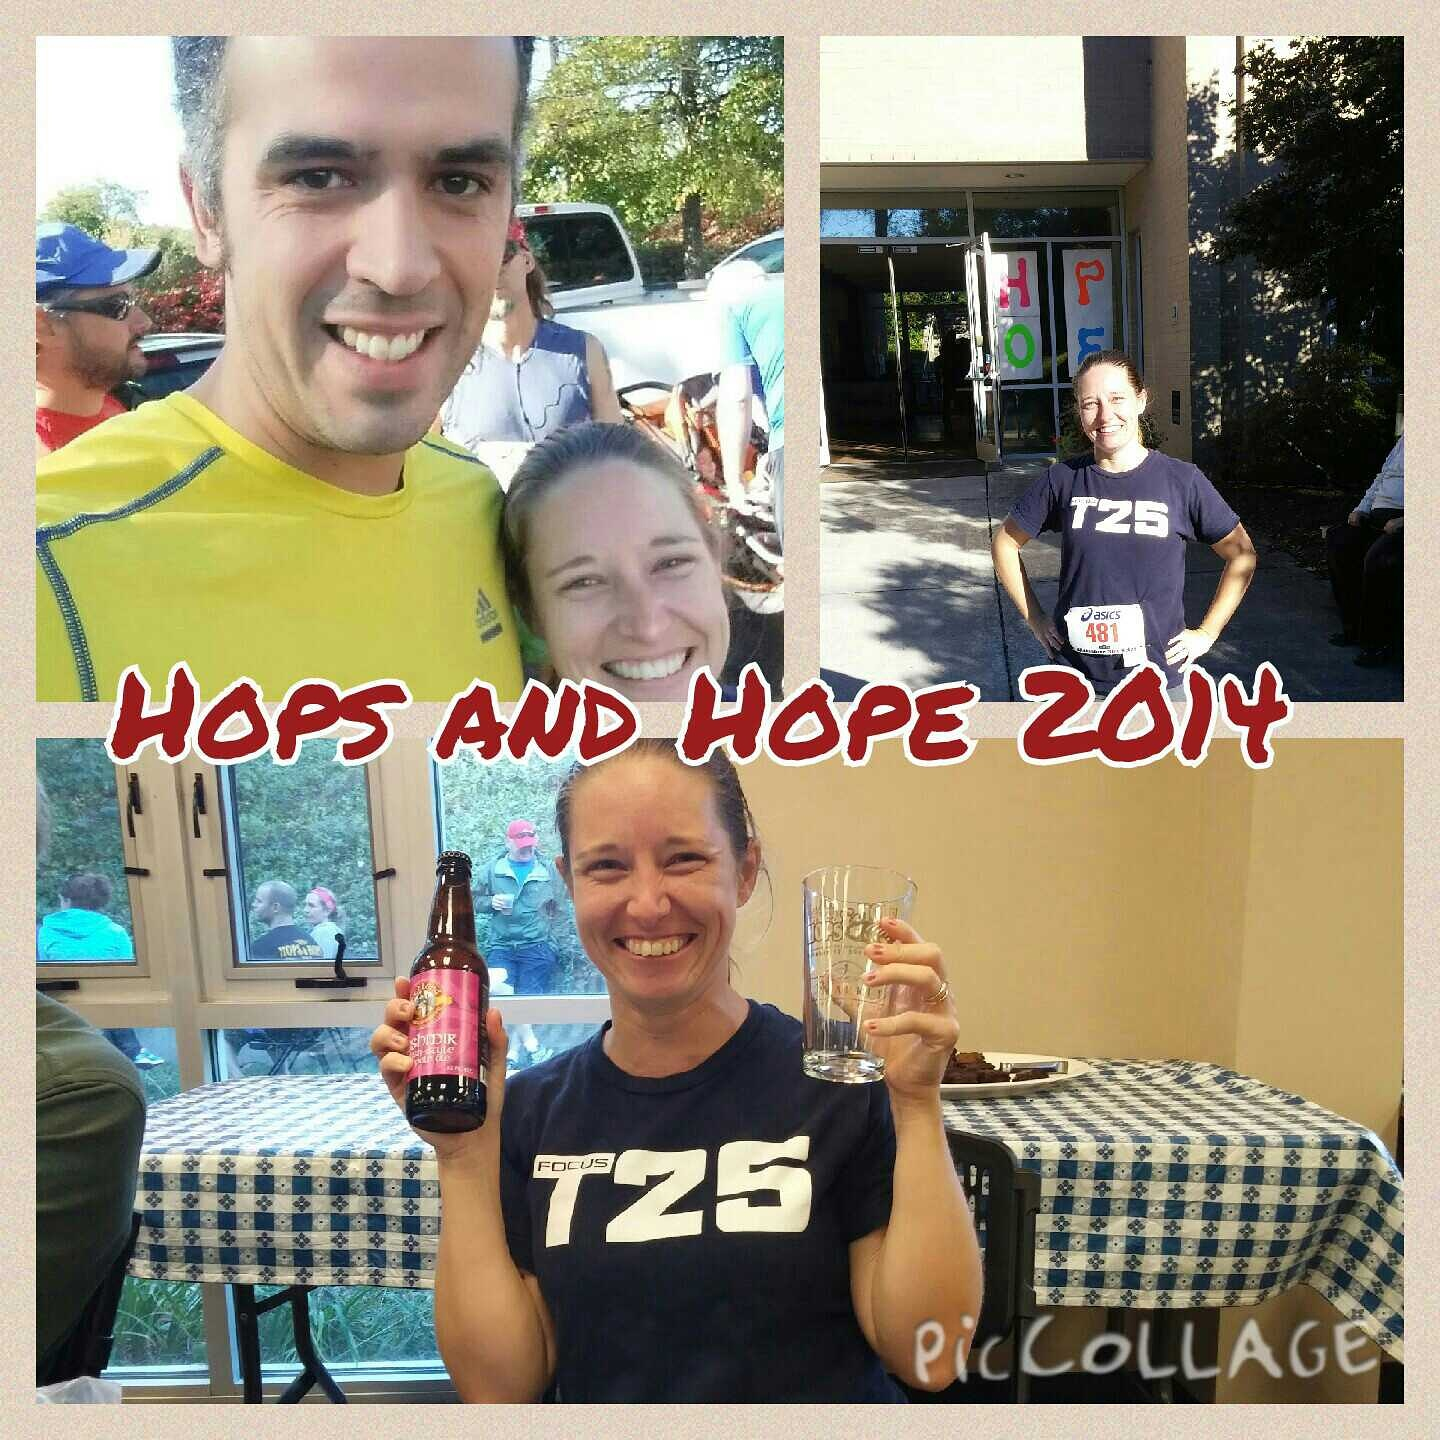 Hops and Hope 2014